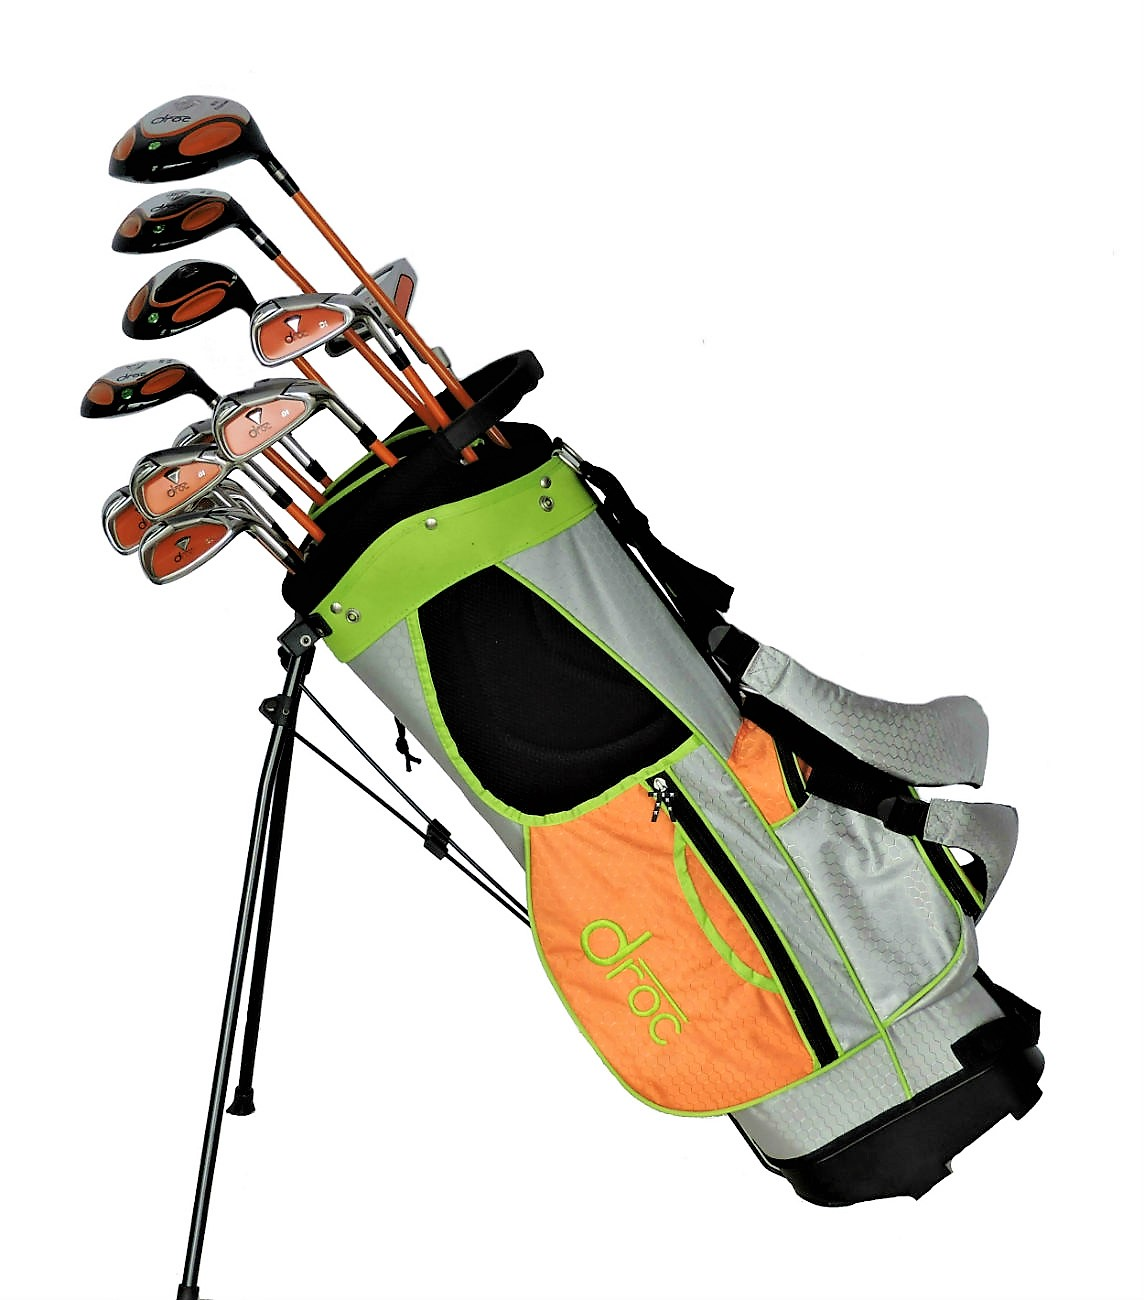 DROC - Dimond Series *13*  Pcs Golf Club Set & Golf Bag Age 9 - 12 Right Handed